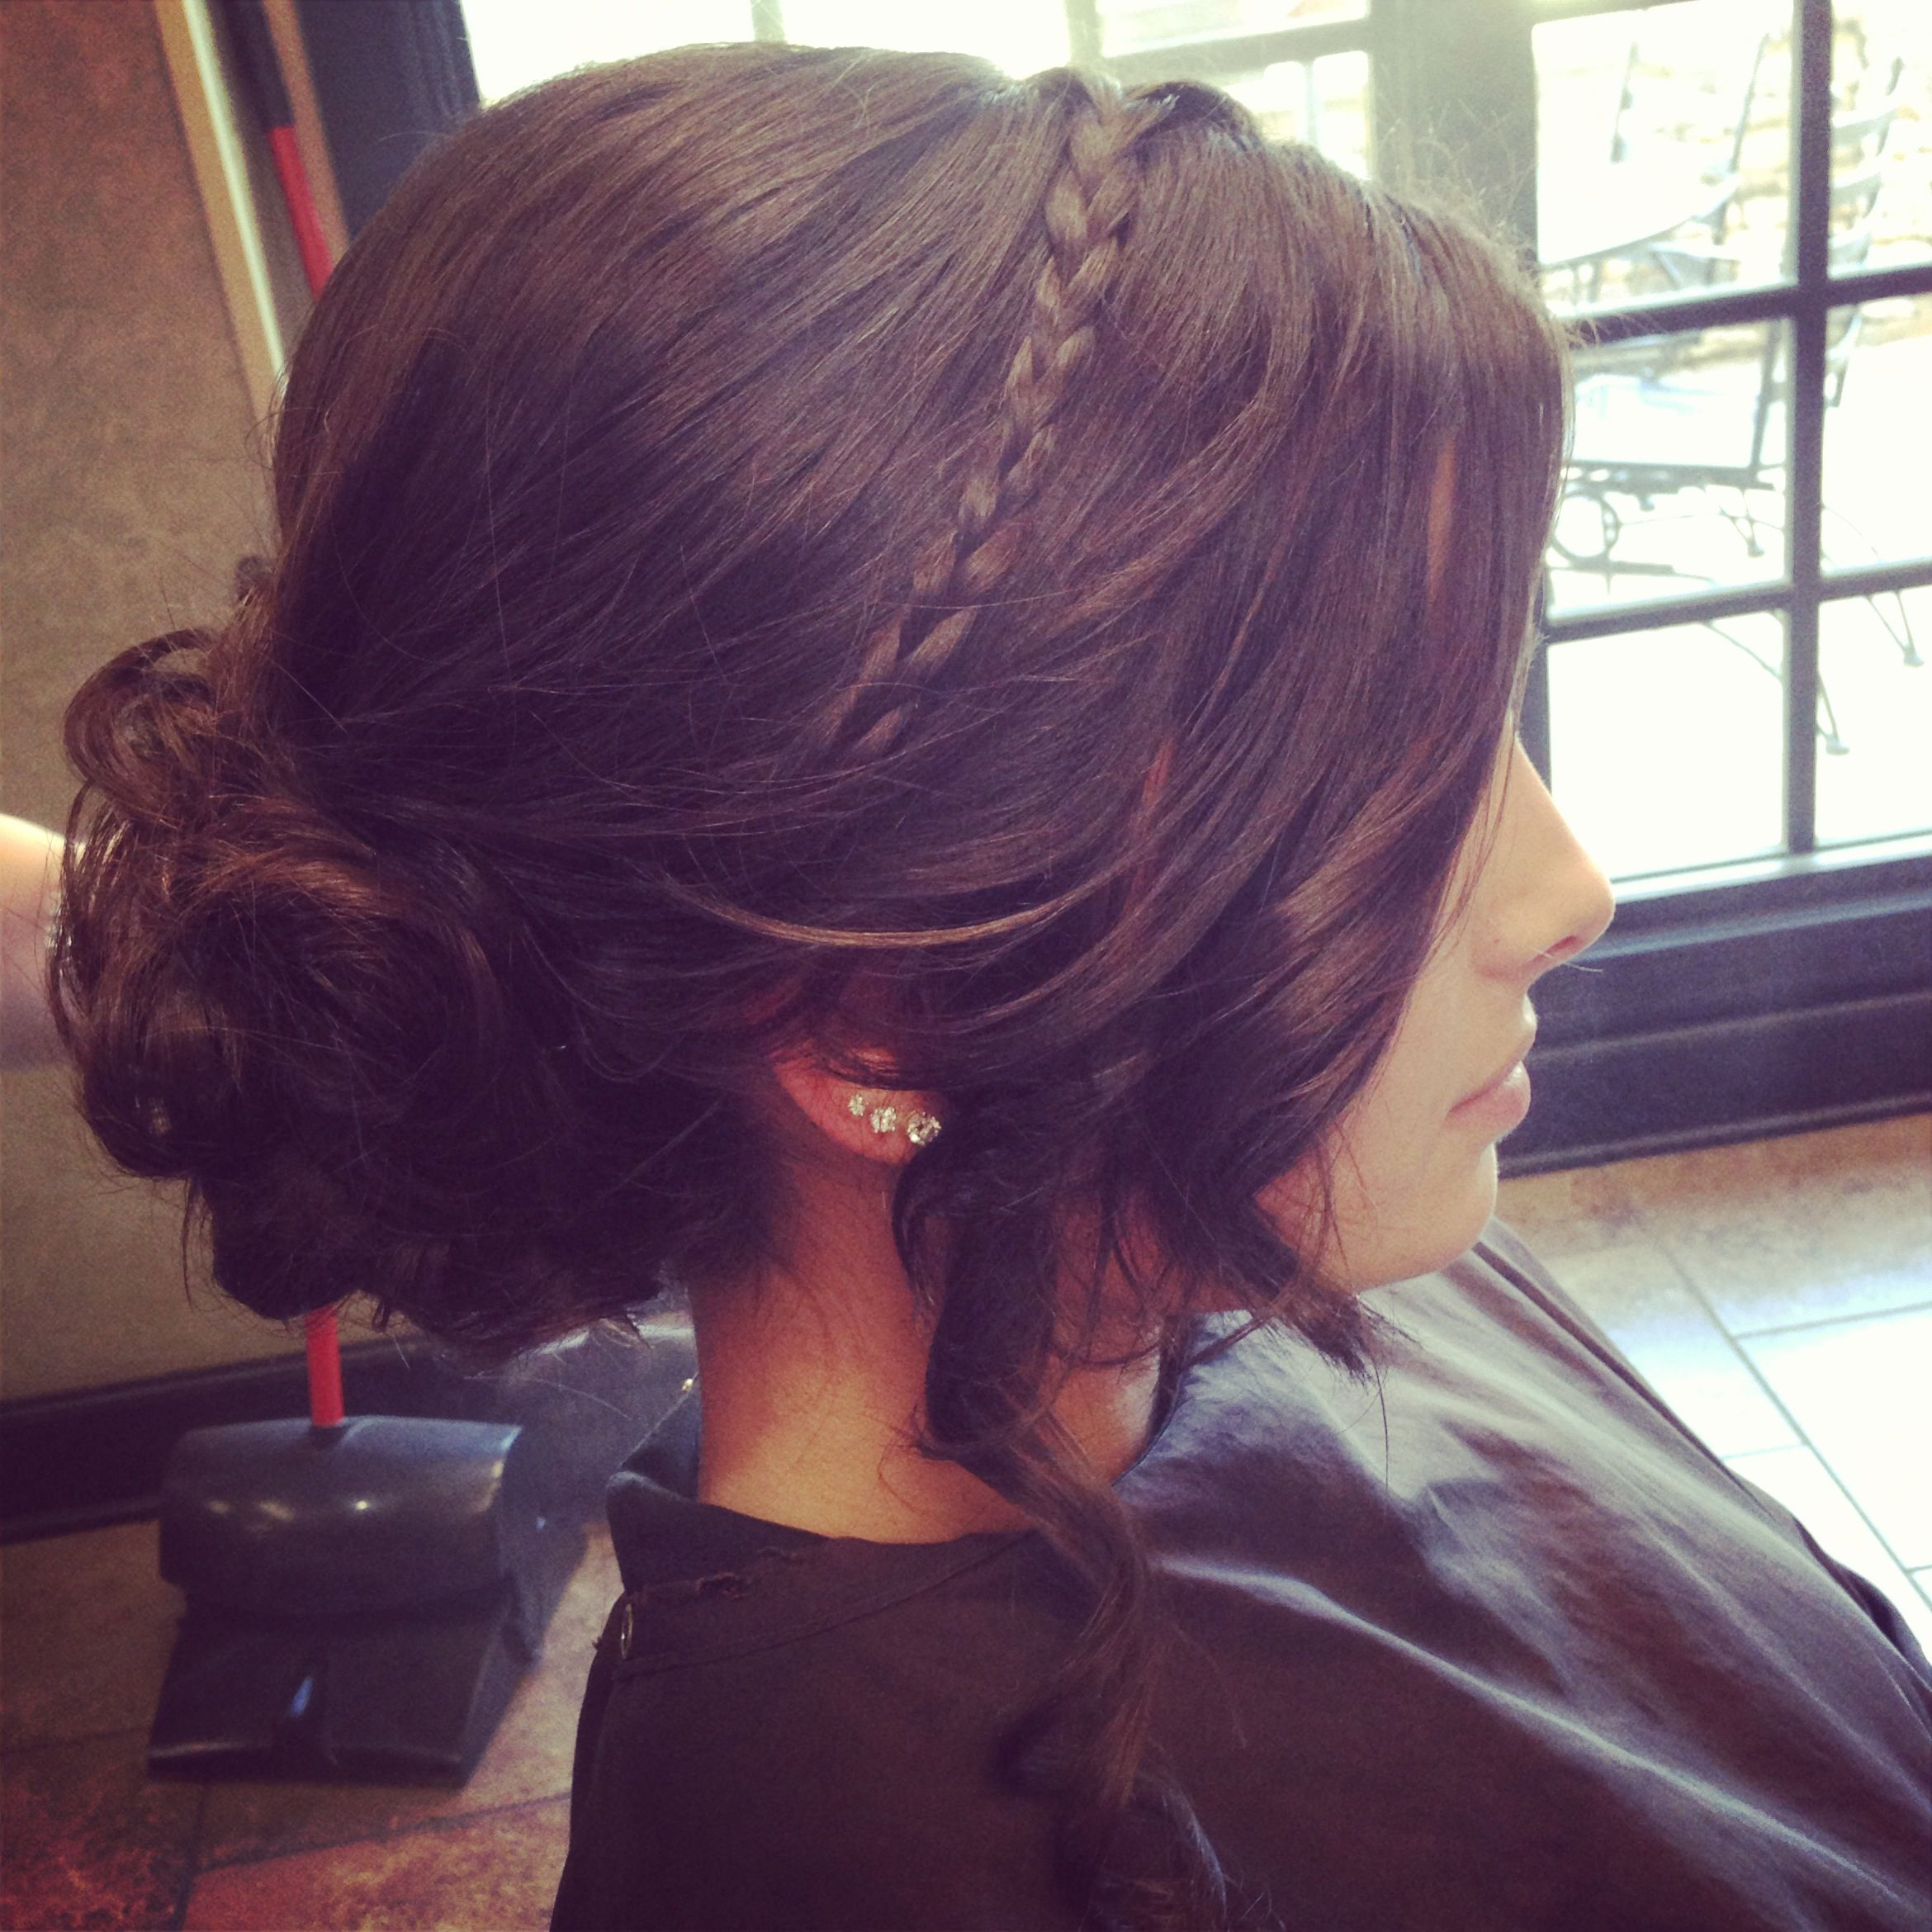 I really love this one with like a jewel piece right above the bun